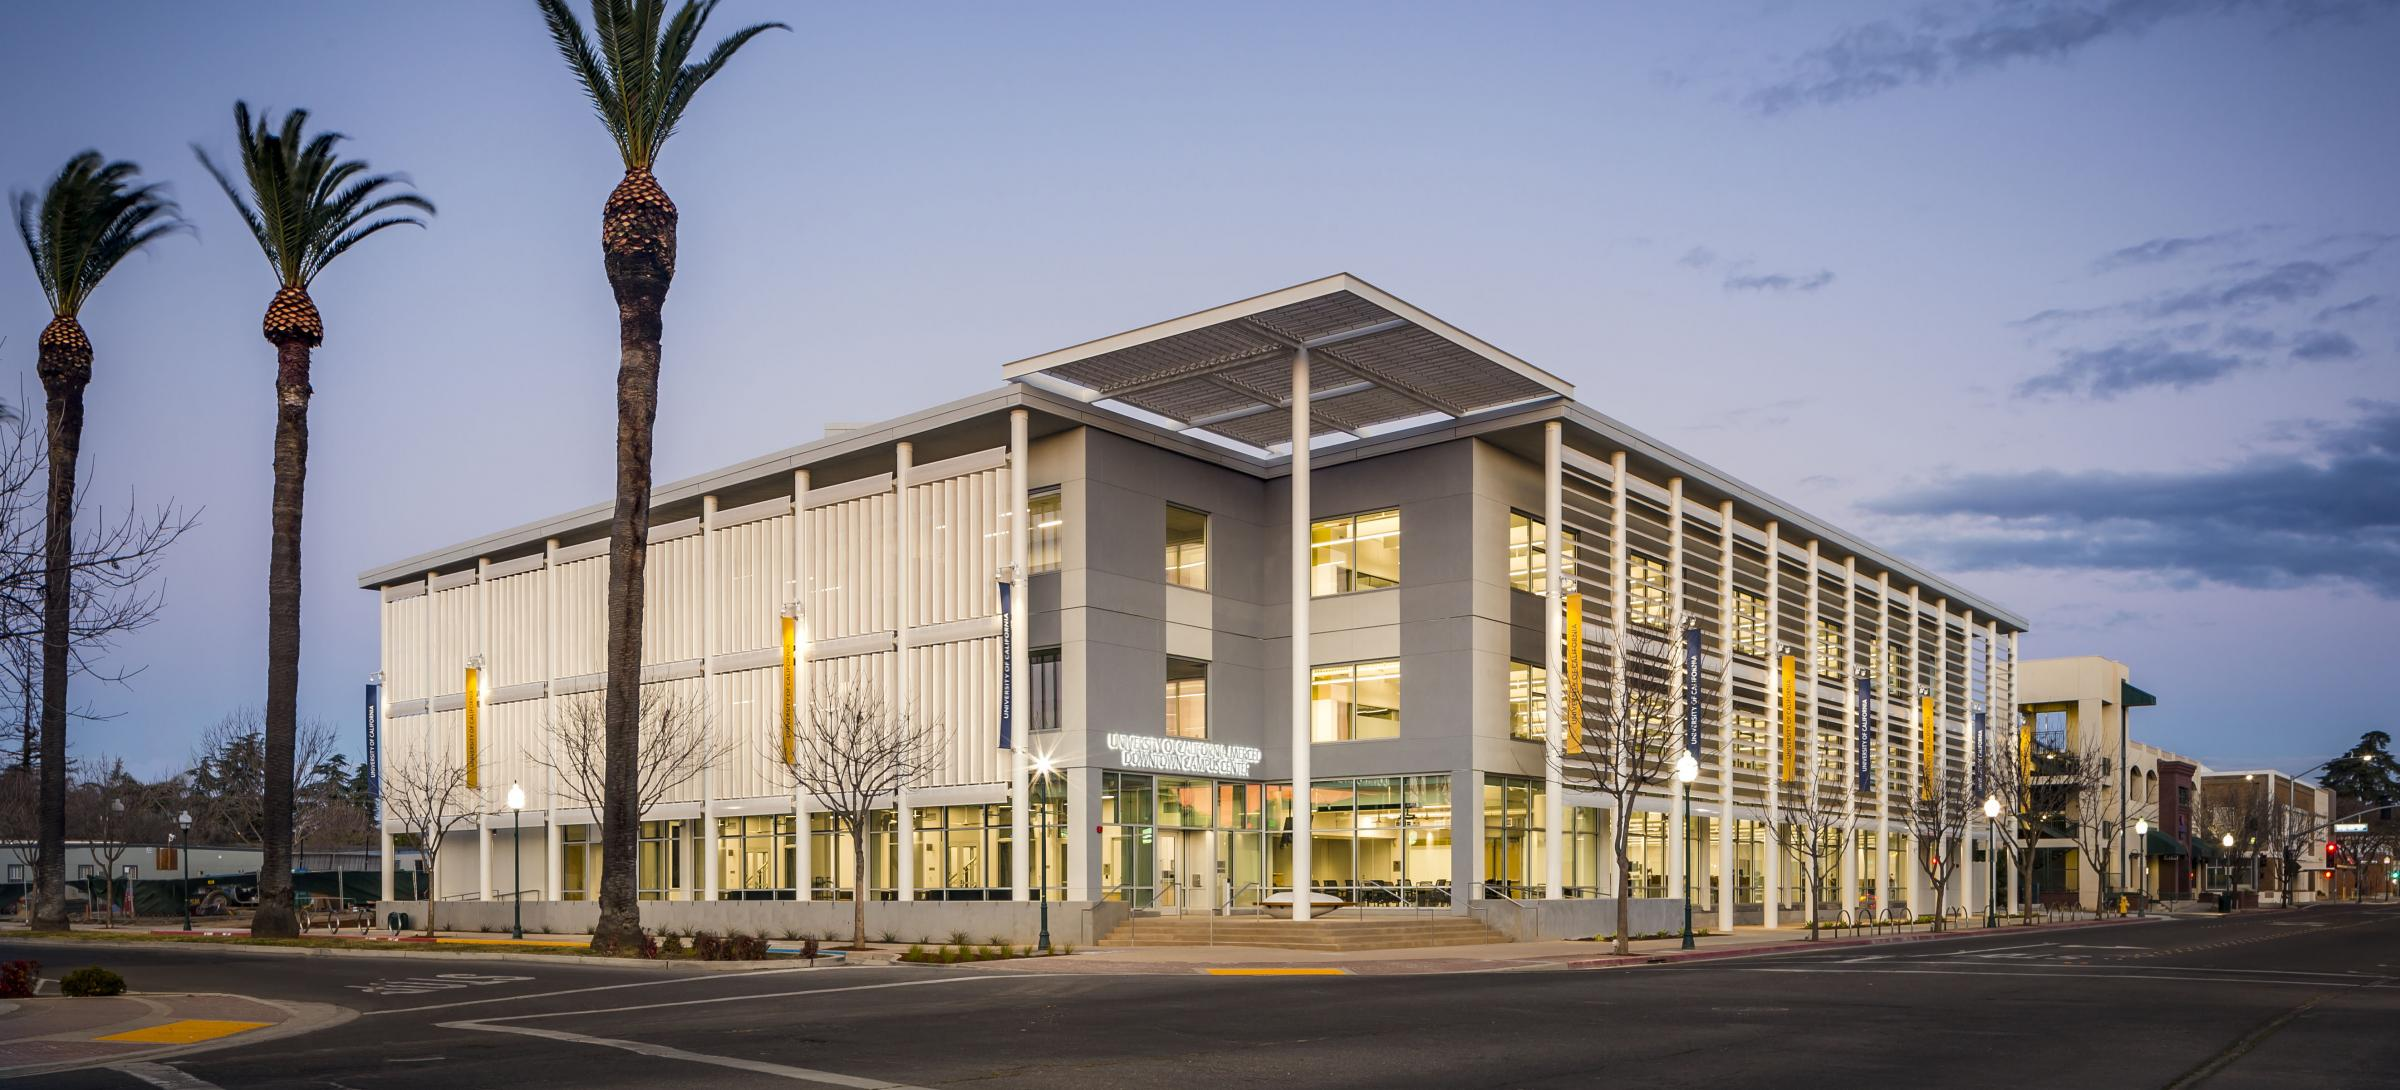 UC Merced Downtown Administration Center | Merced